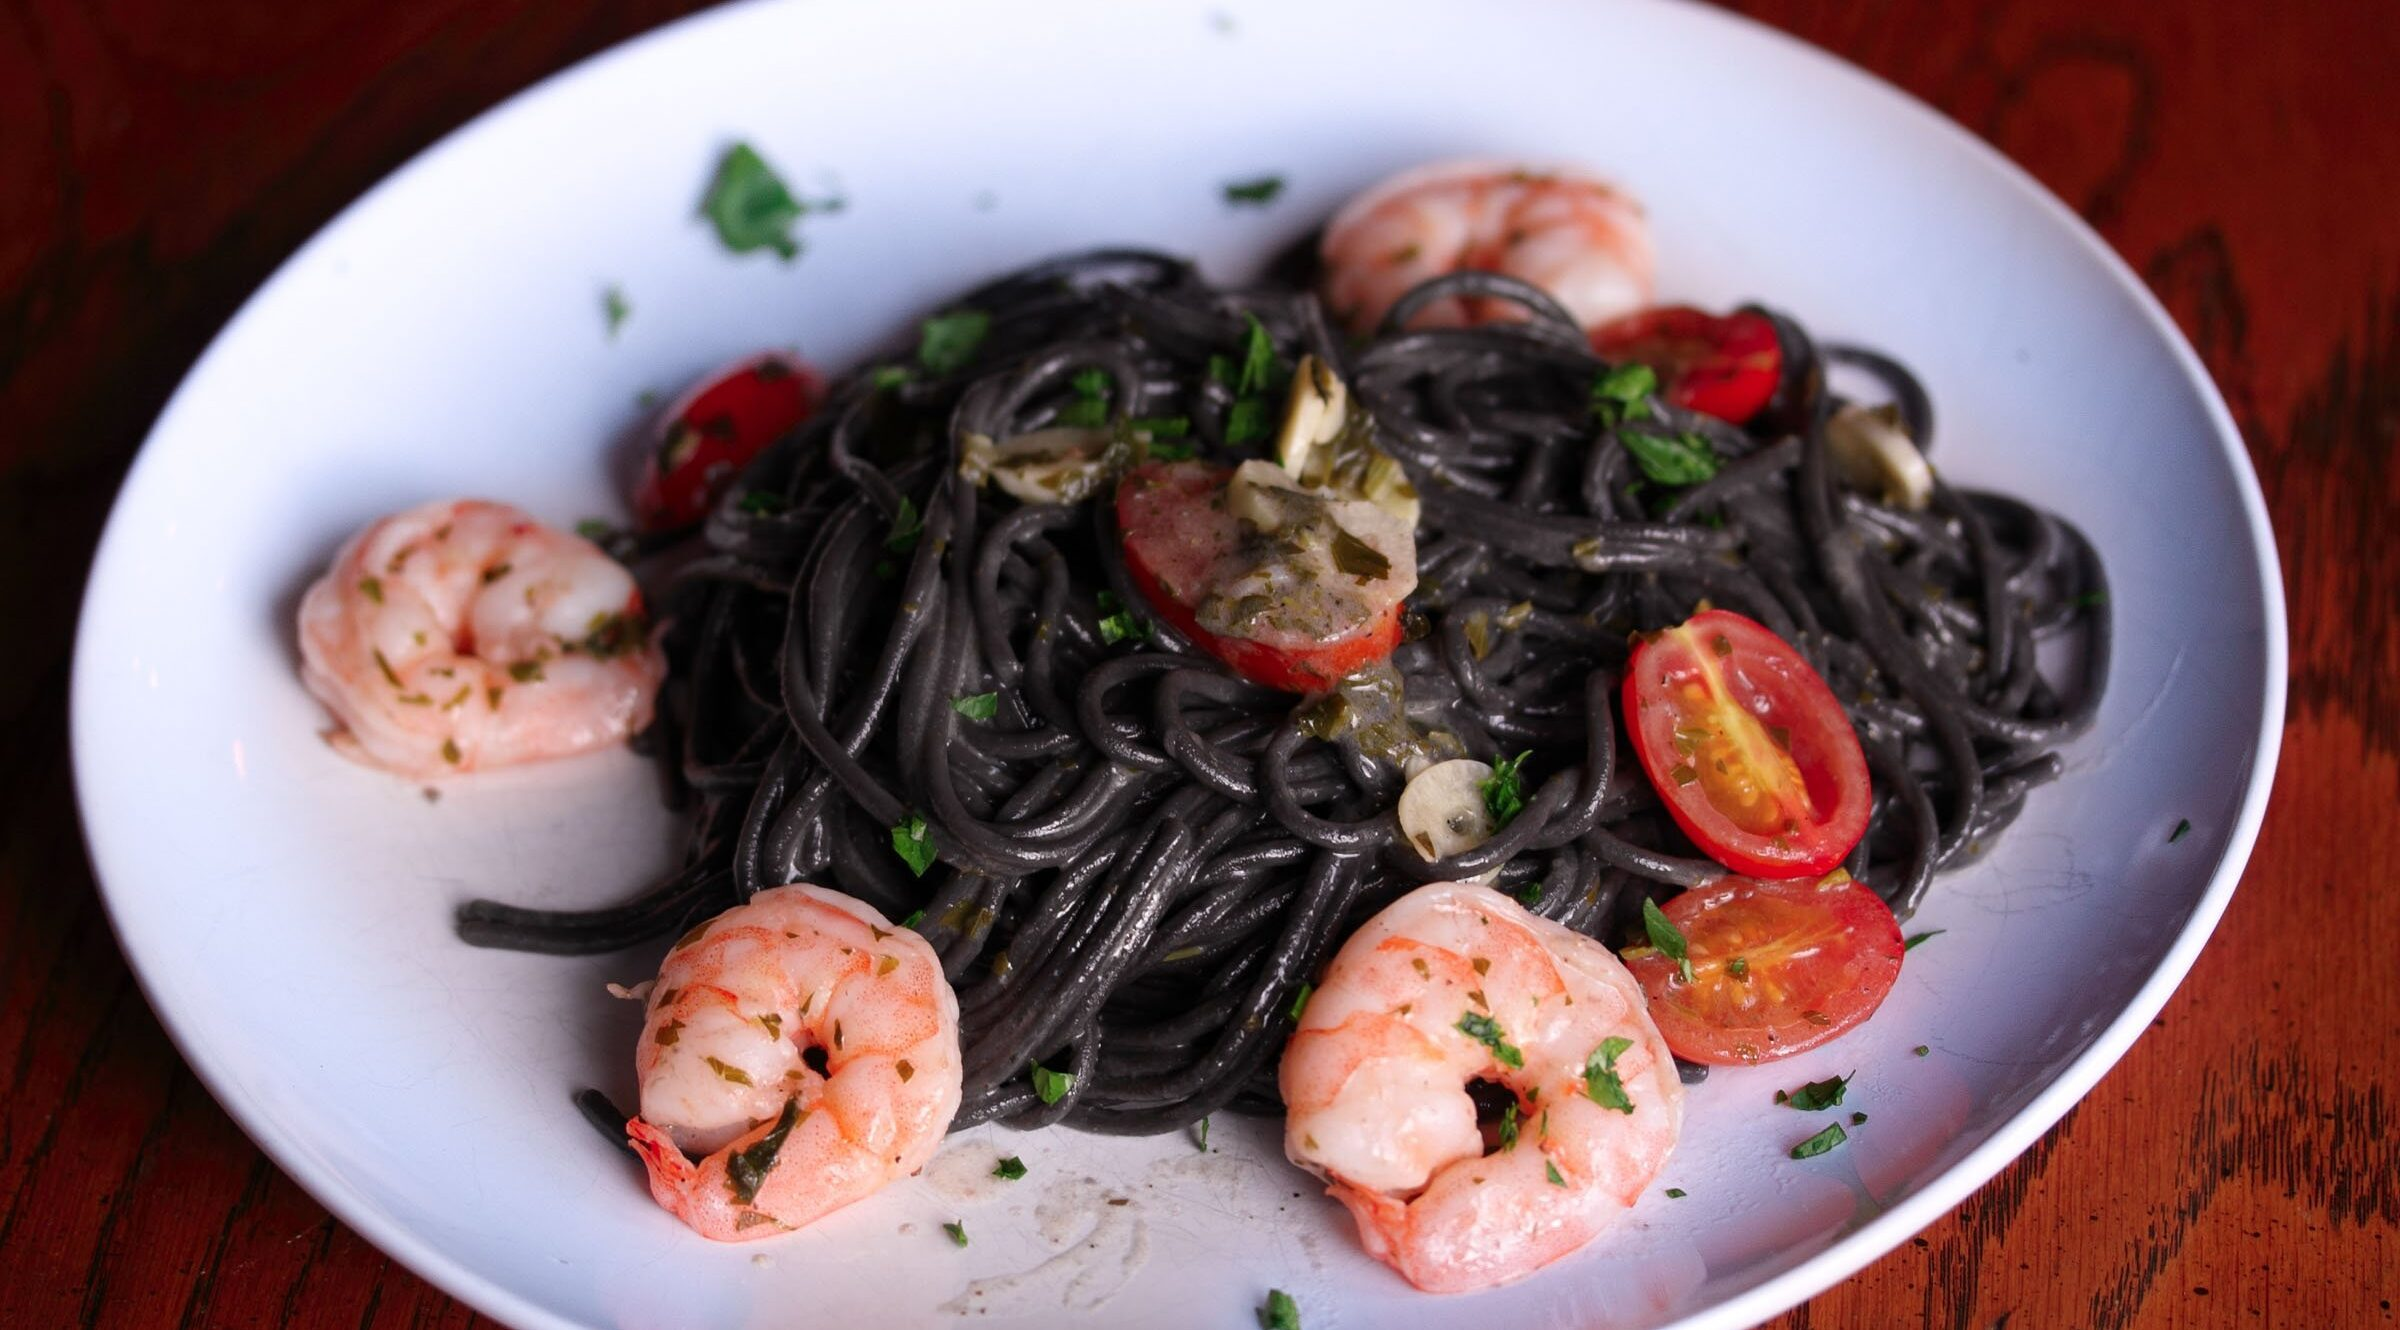 ink pasta with shrimps, tomatoes and garlic